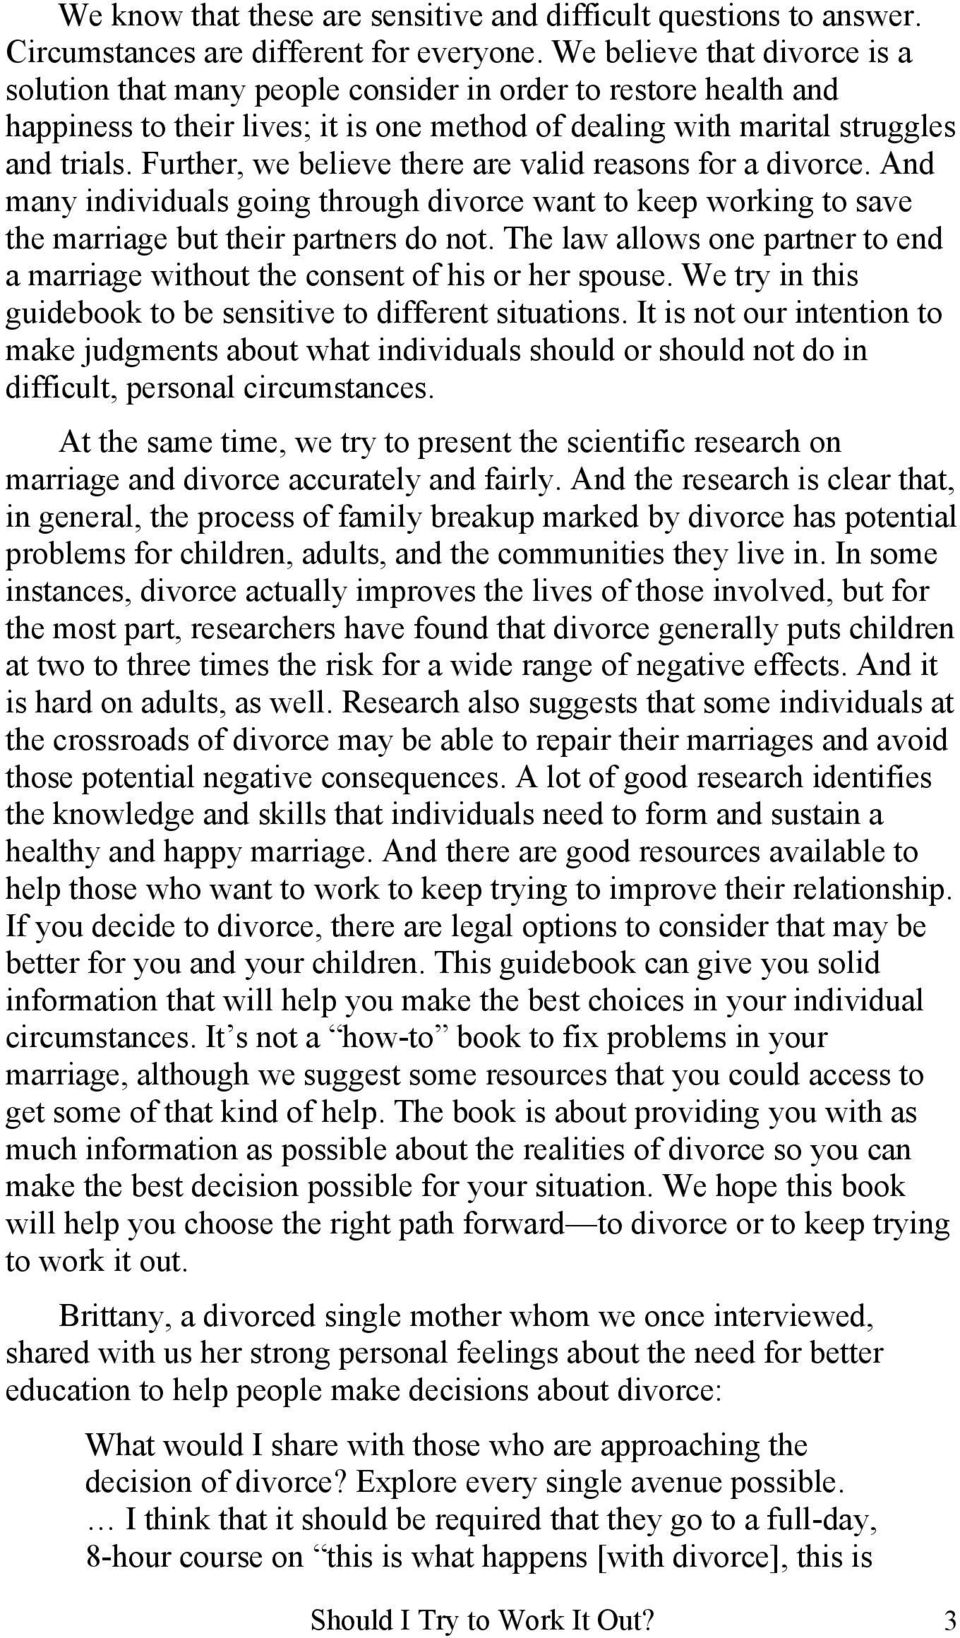 Further, we believe there are valid reasons for a divorce. And many individuals going through divorce want to keep working to save the marriage but their partners do not.